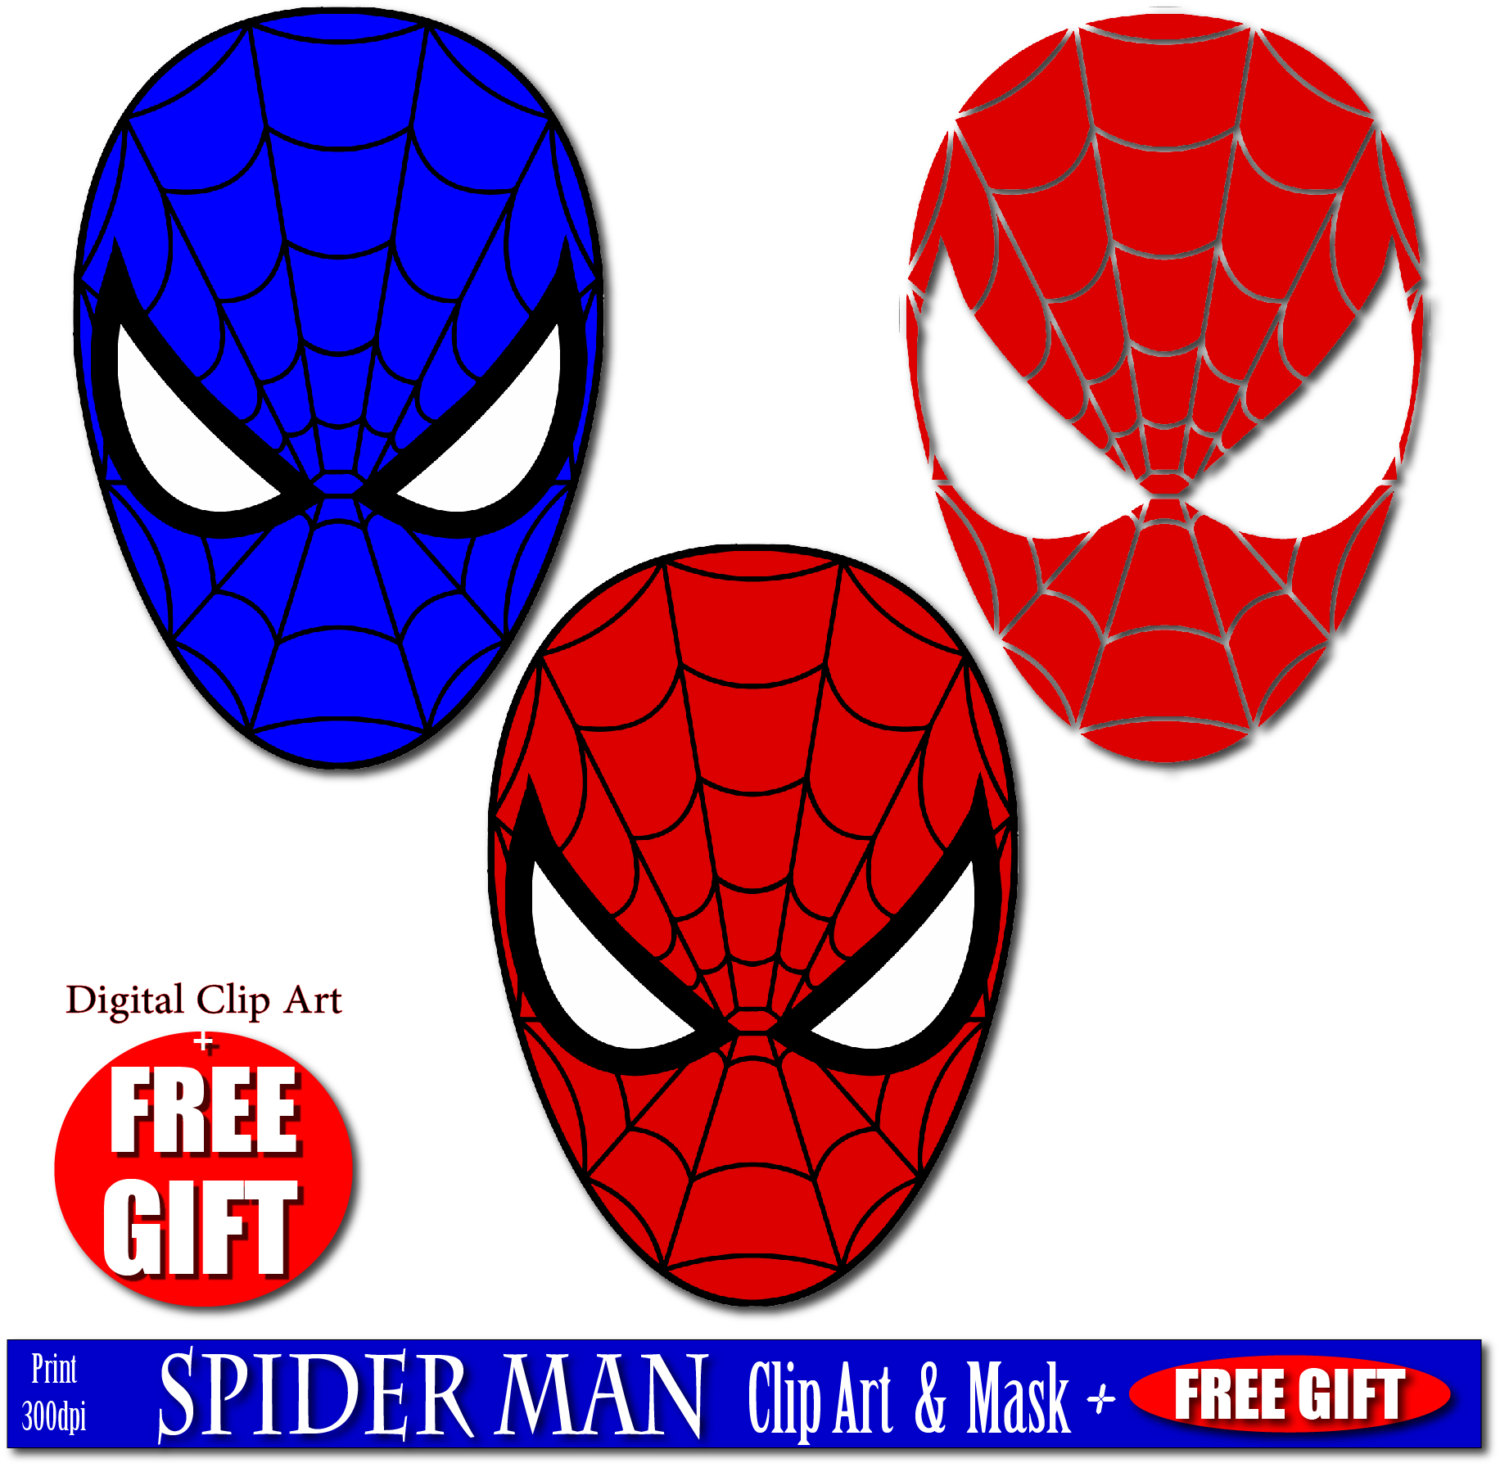 1500x1481 Digital Clip Art Spiderman Mask Superhero Party Masks Clipart